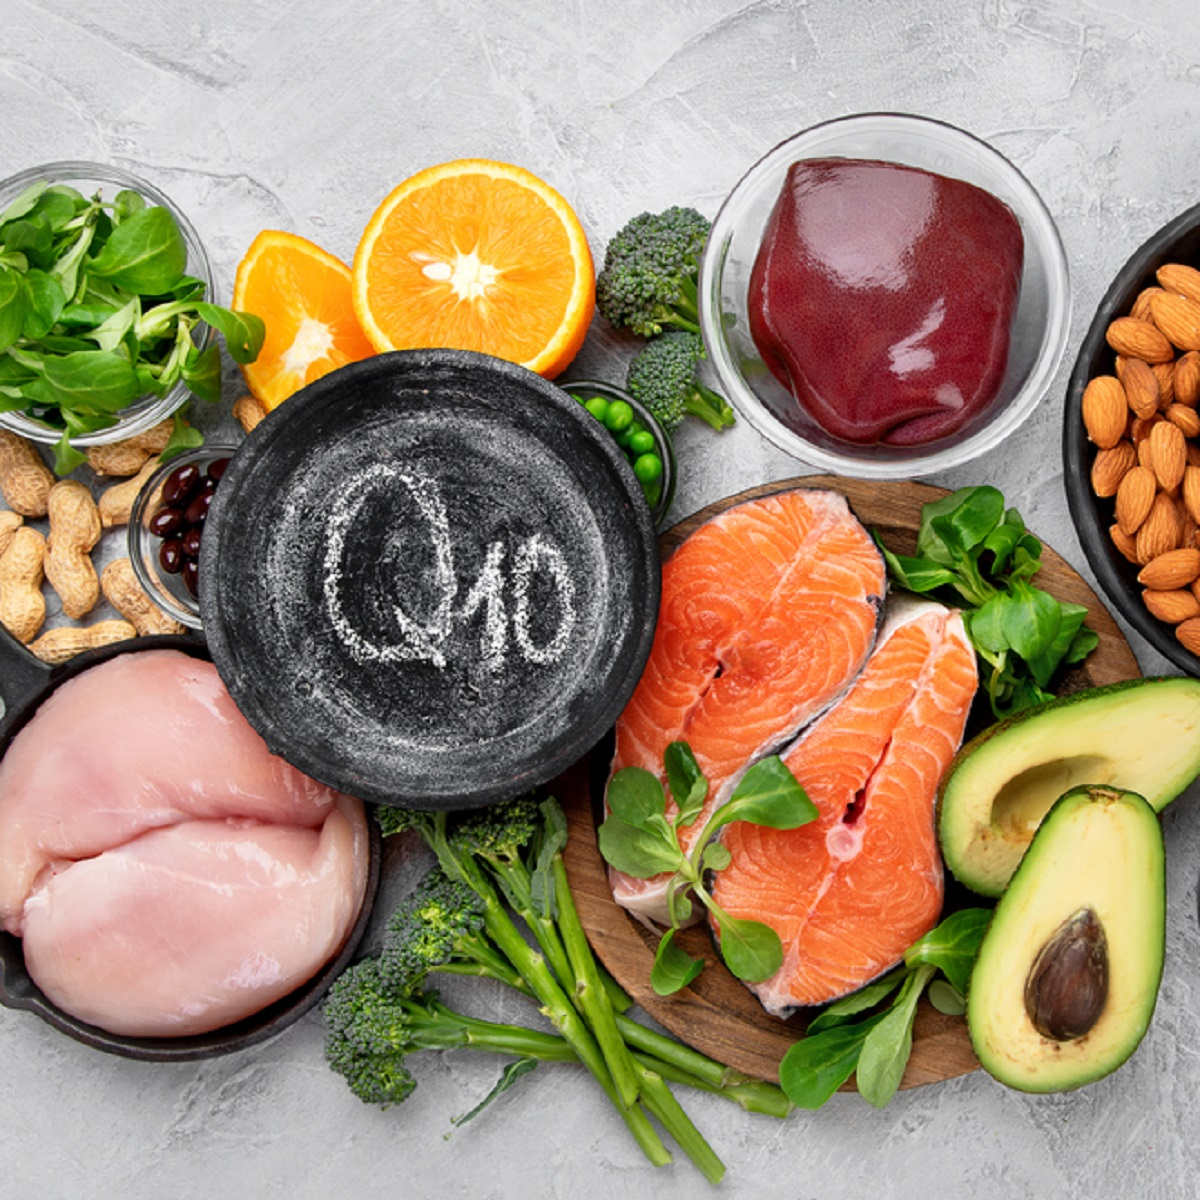 PRIMARY COQ10 DEFICIENCY SYMPTOMS – What May Happen When You Don't Get Enough Coenzyme Q10?